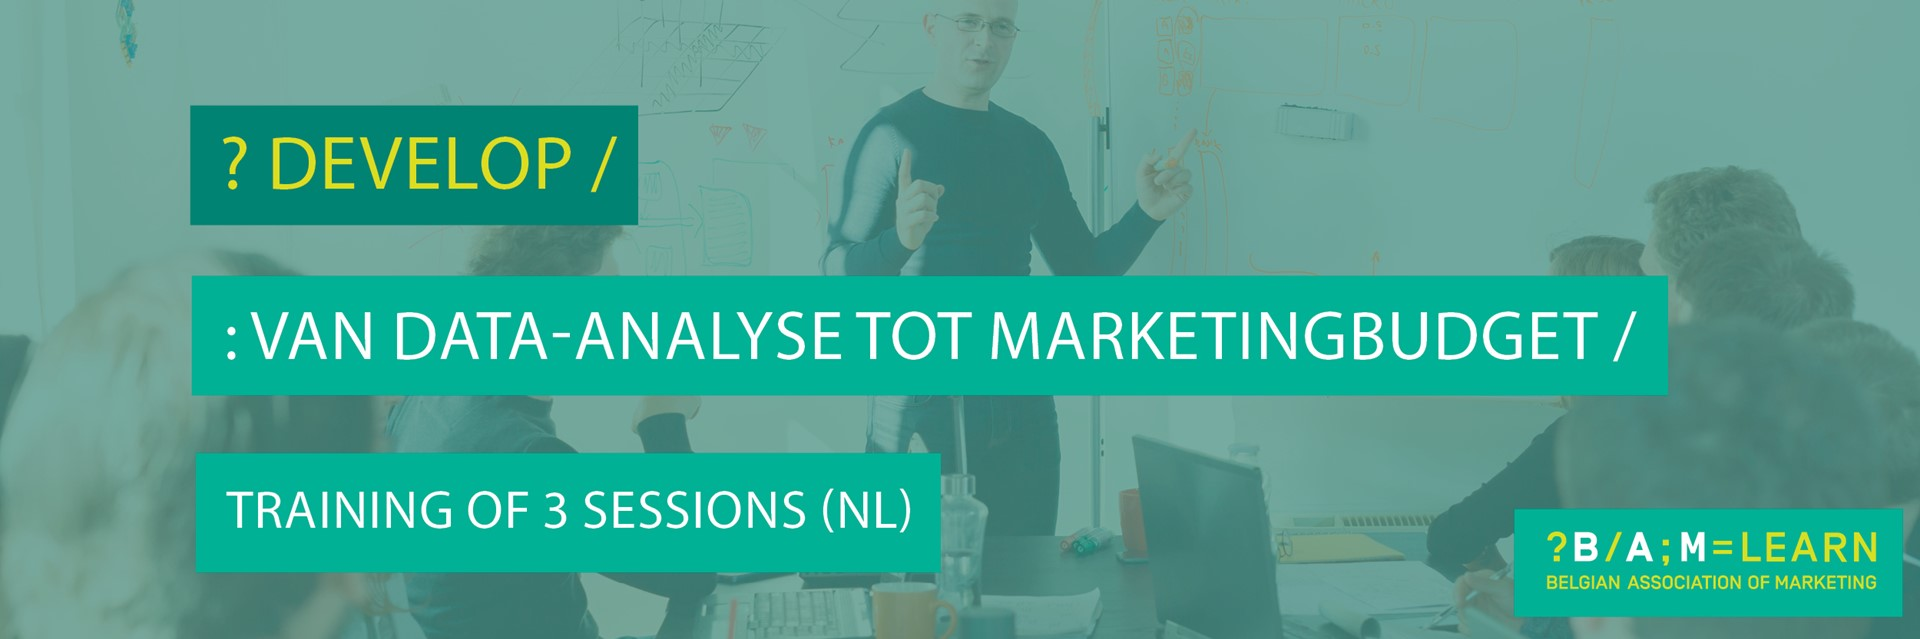 Develop_data analyse tot marketing budget